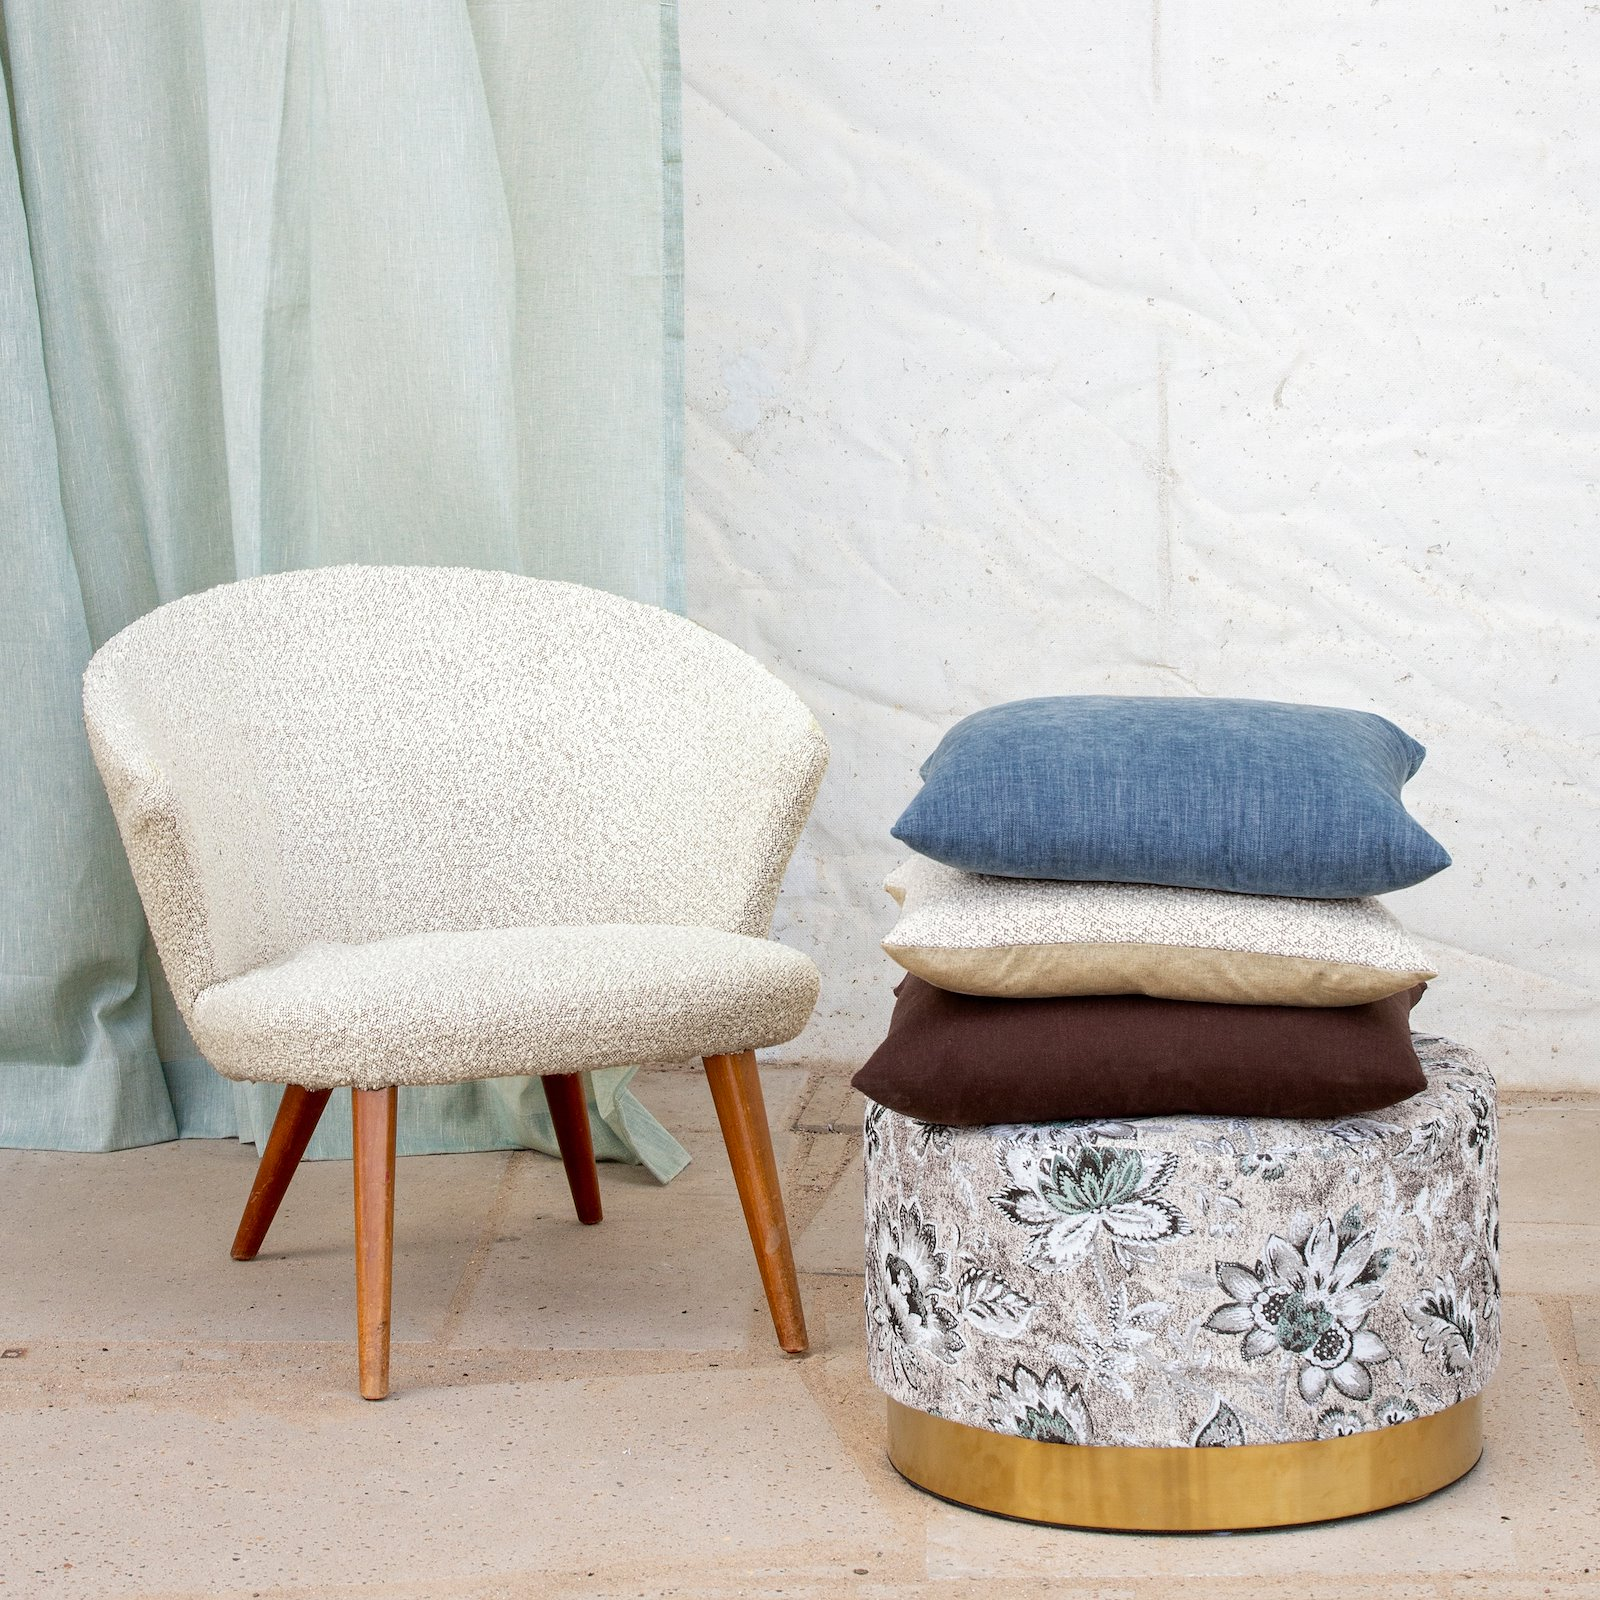 Upholstery chenille structure dusty blue 824161_824169_824160_851962_bundle